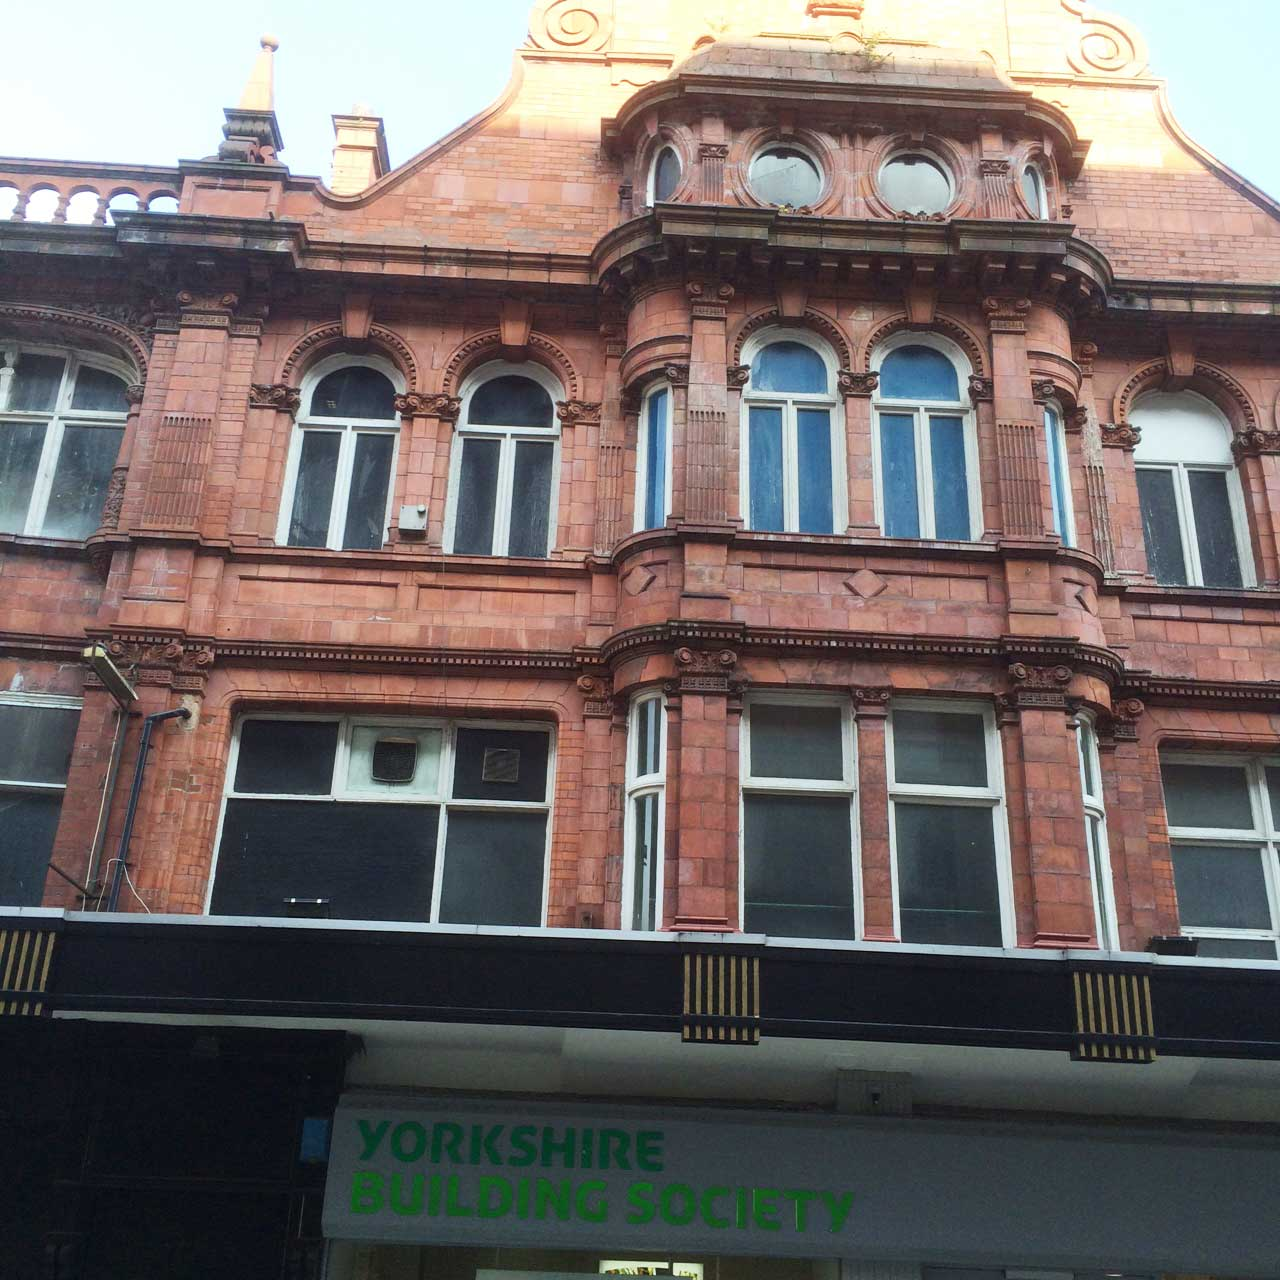 prior-approval-change-of-use-B1-to-C3-Manchester_Bolton-Building_regulations-2